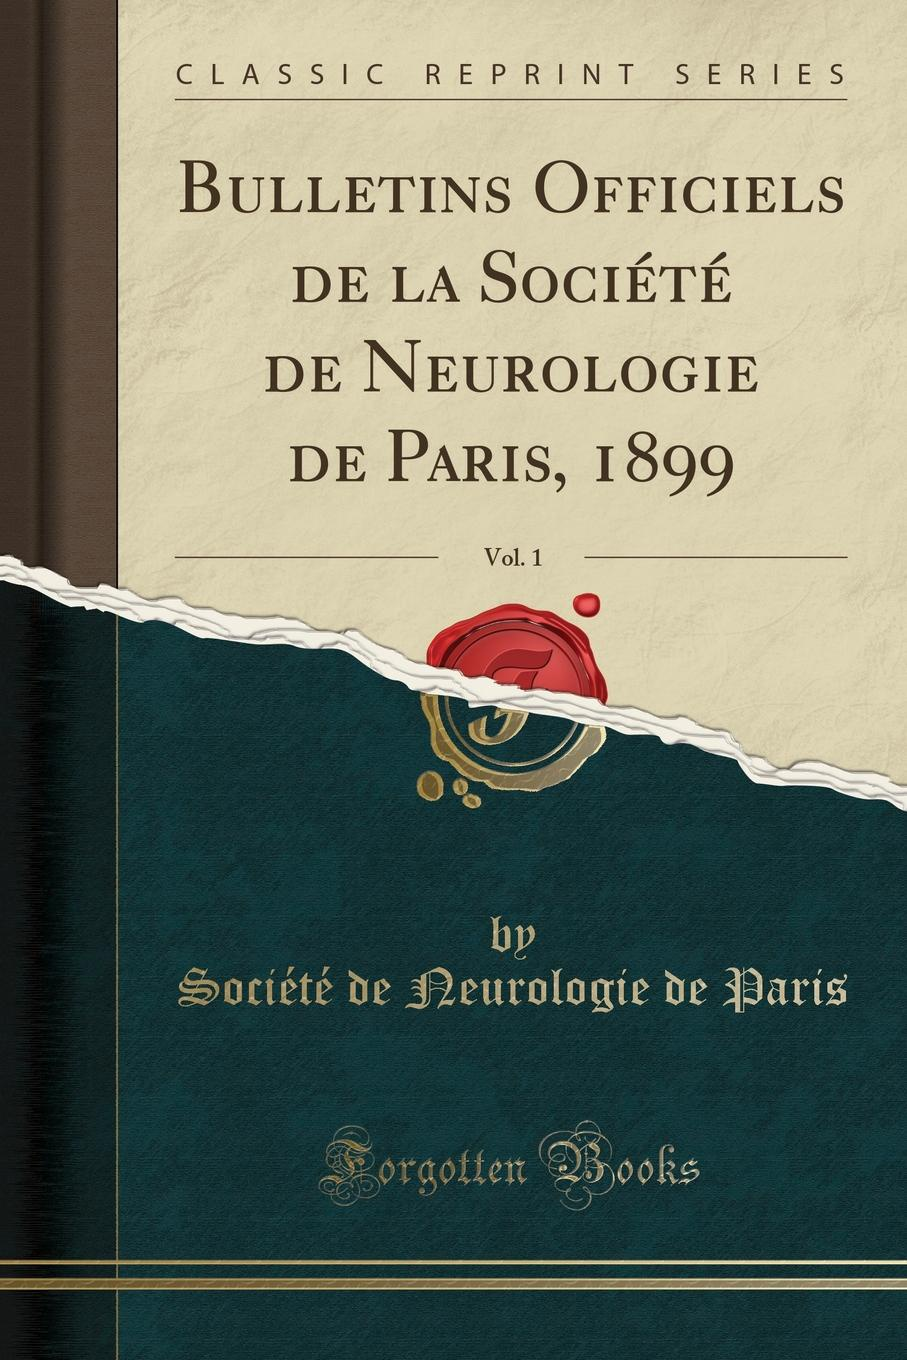 Société de Neurologie de Paris Bulletins Officiels de la Societe de Neurologie de Paris, 1899, Vol. 1 (Classic Reprint)